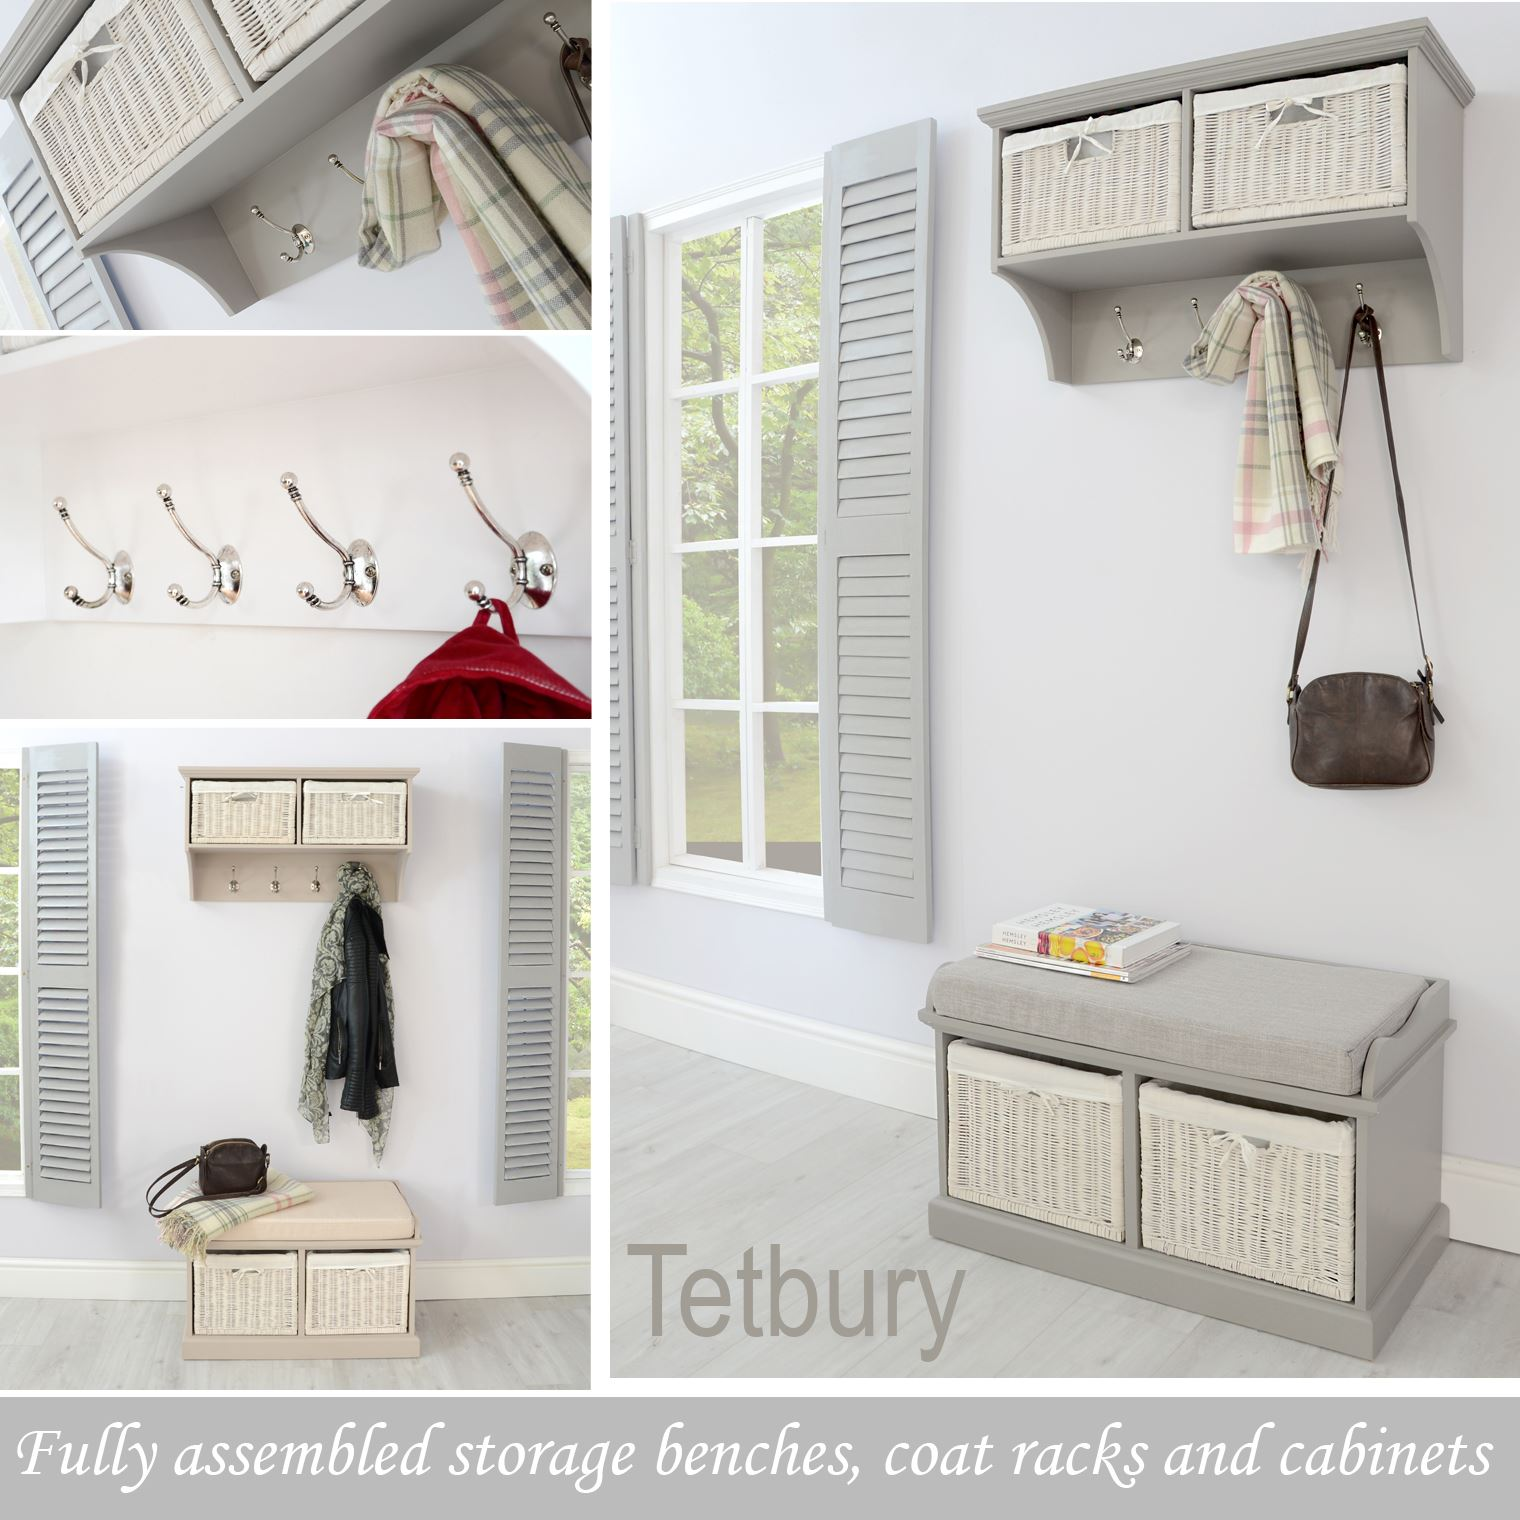 Details about tetbury hallway set hanging shelf and bench very sturdy hallway furniture